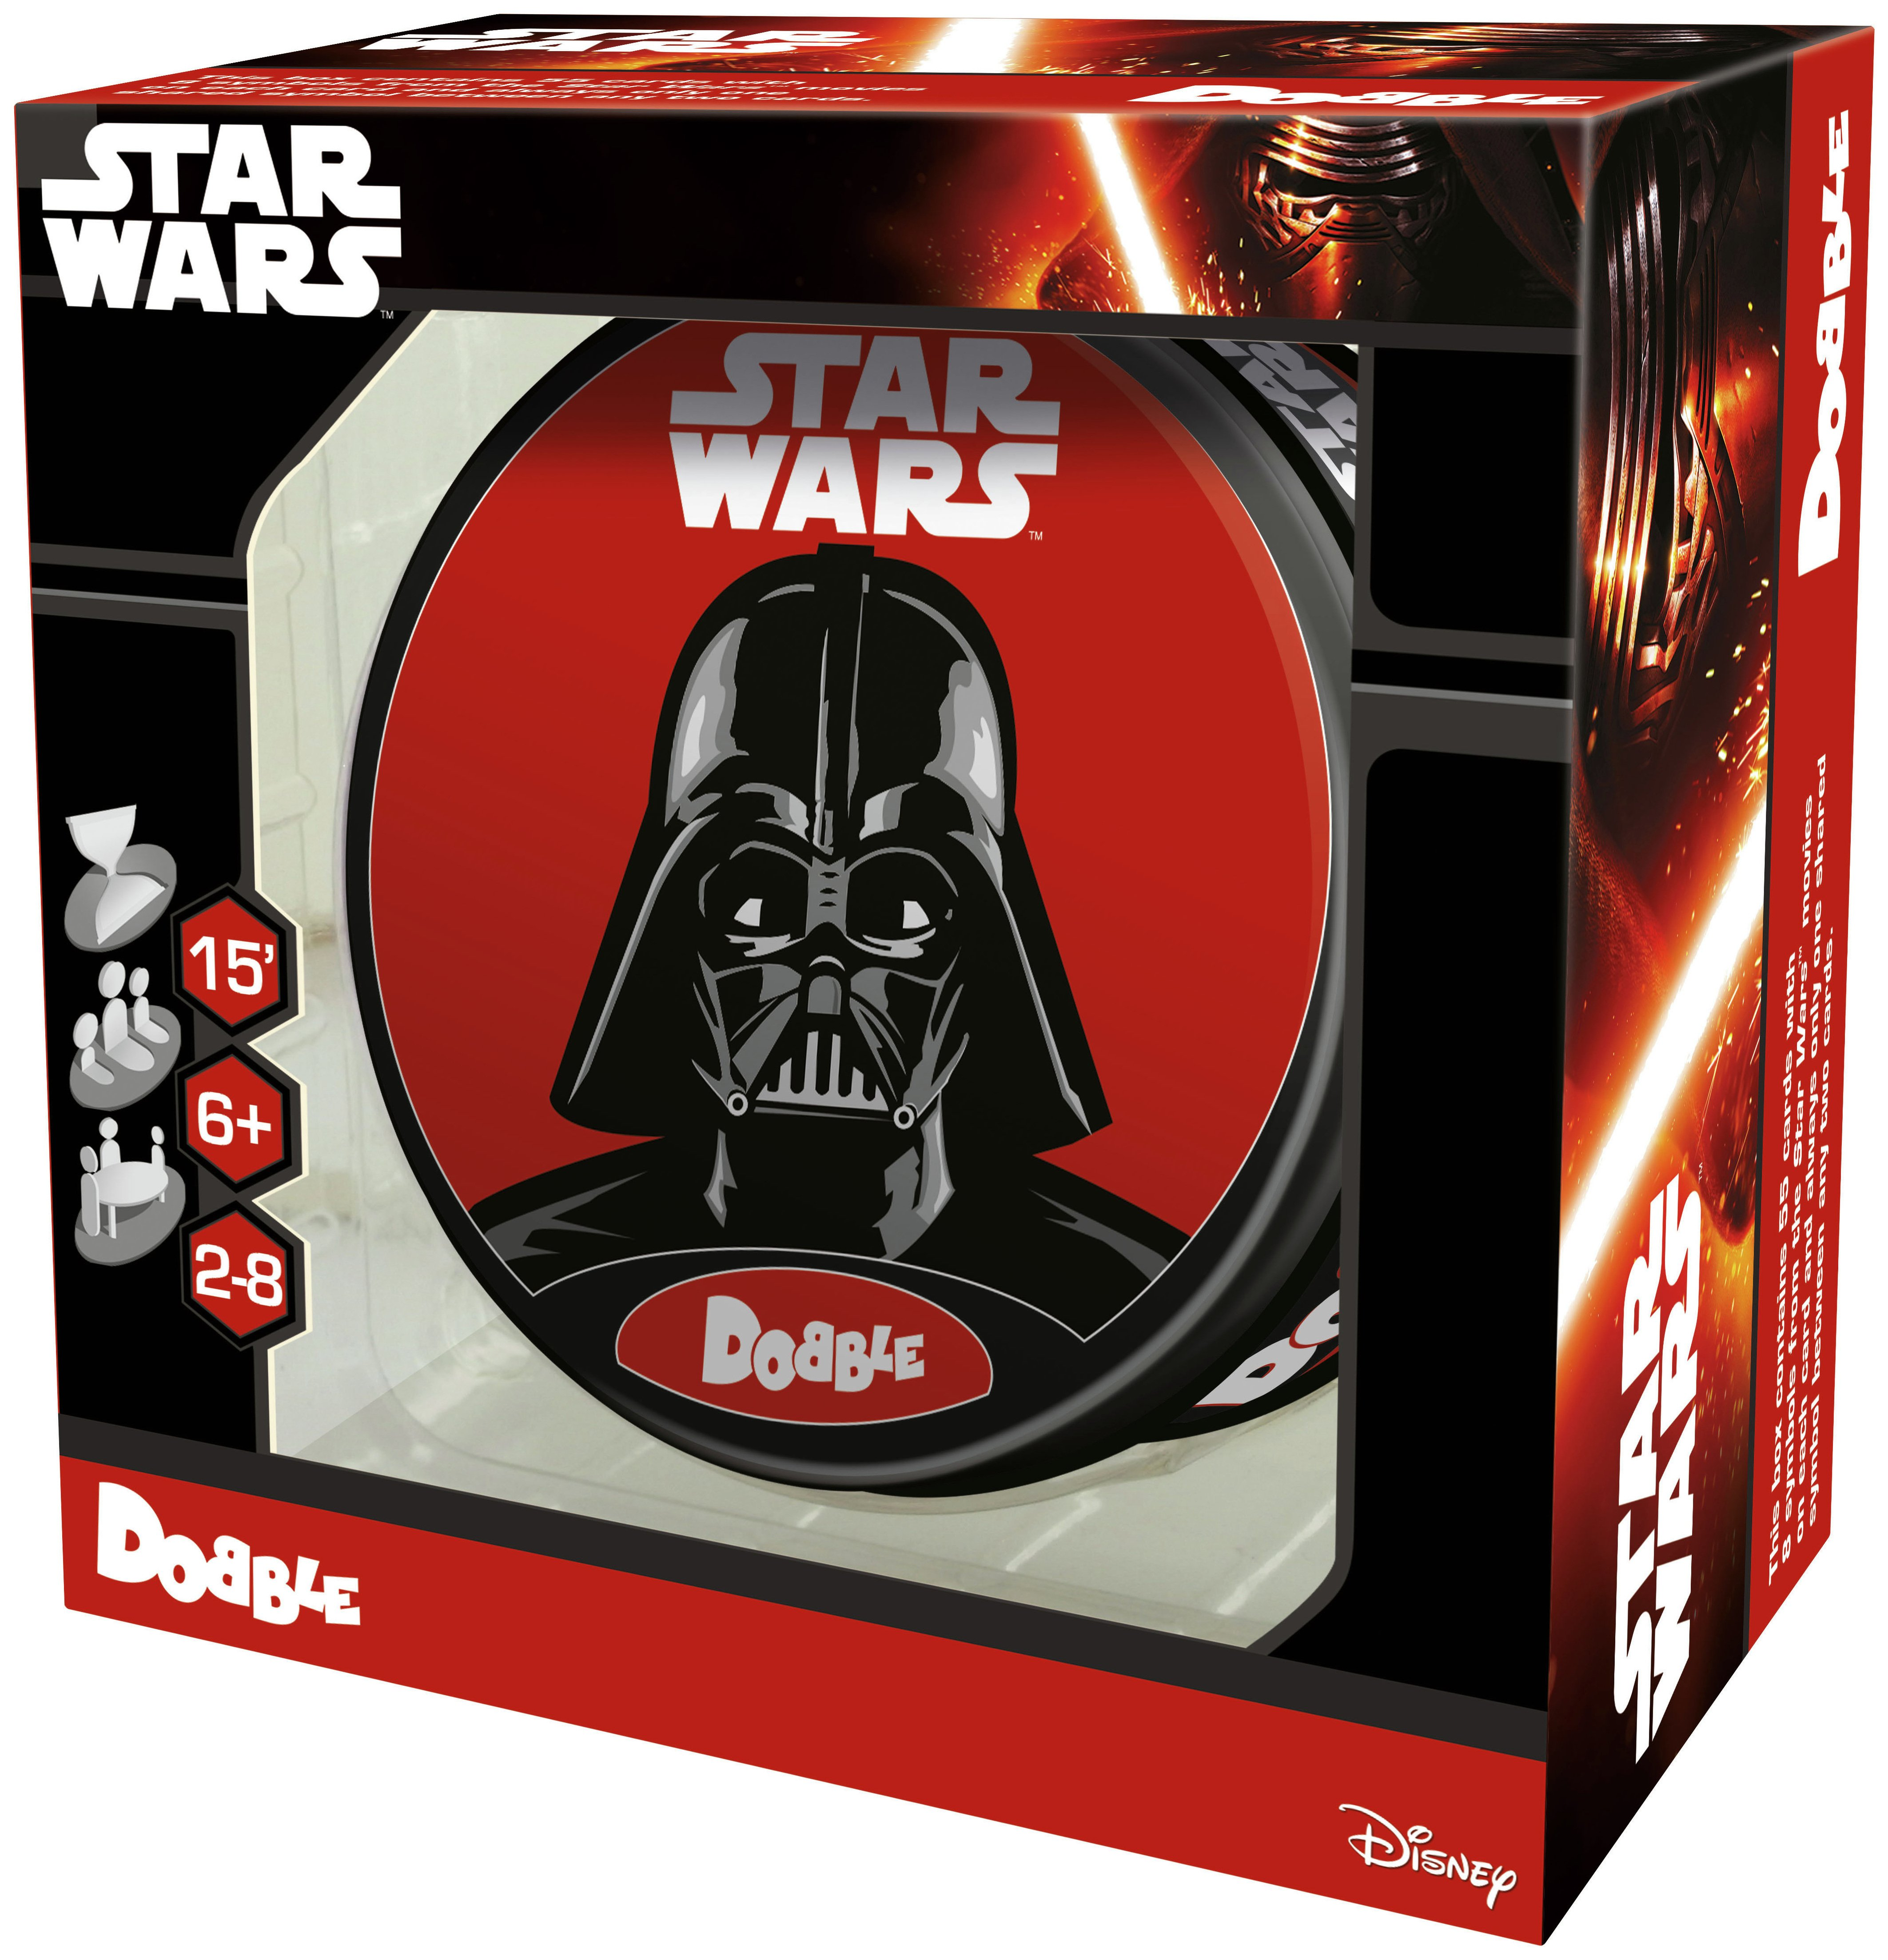 Image of Star Wars Dobble Game.